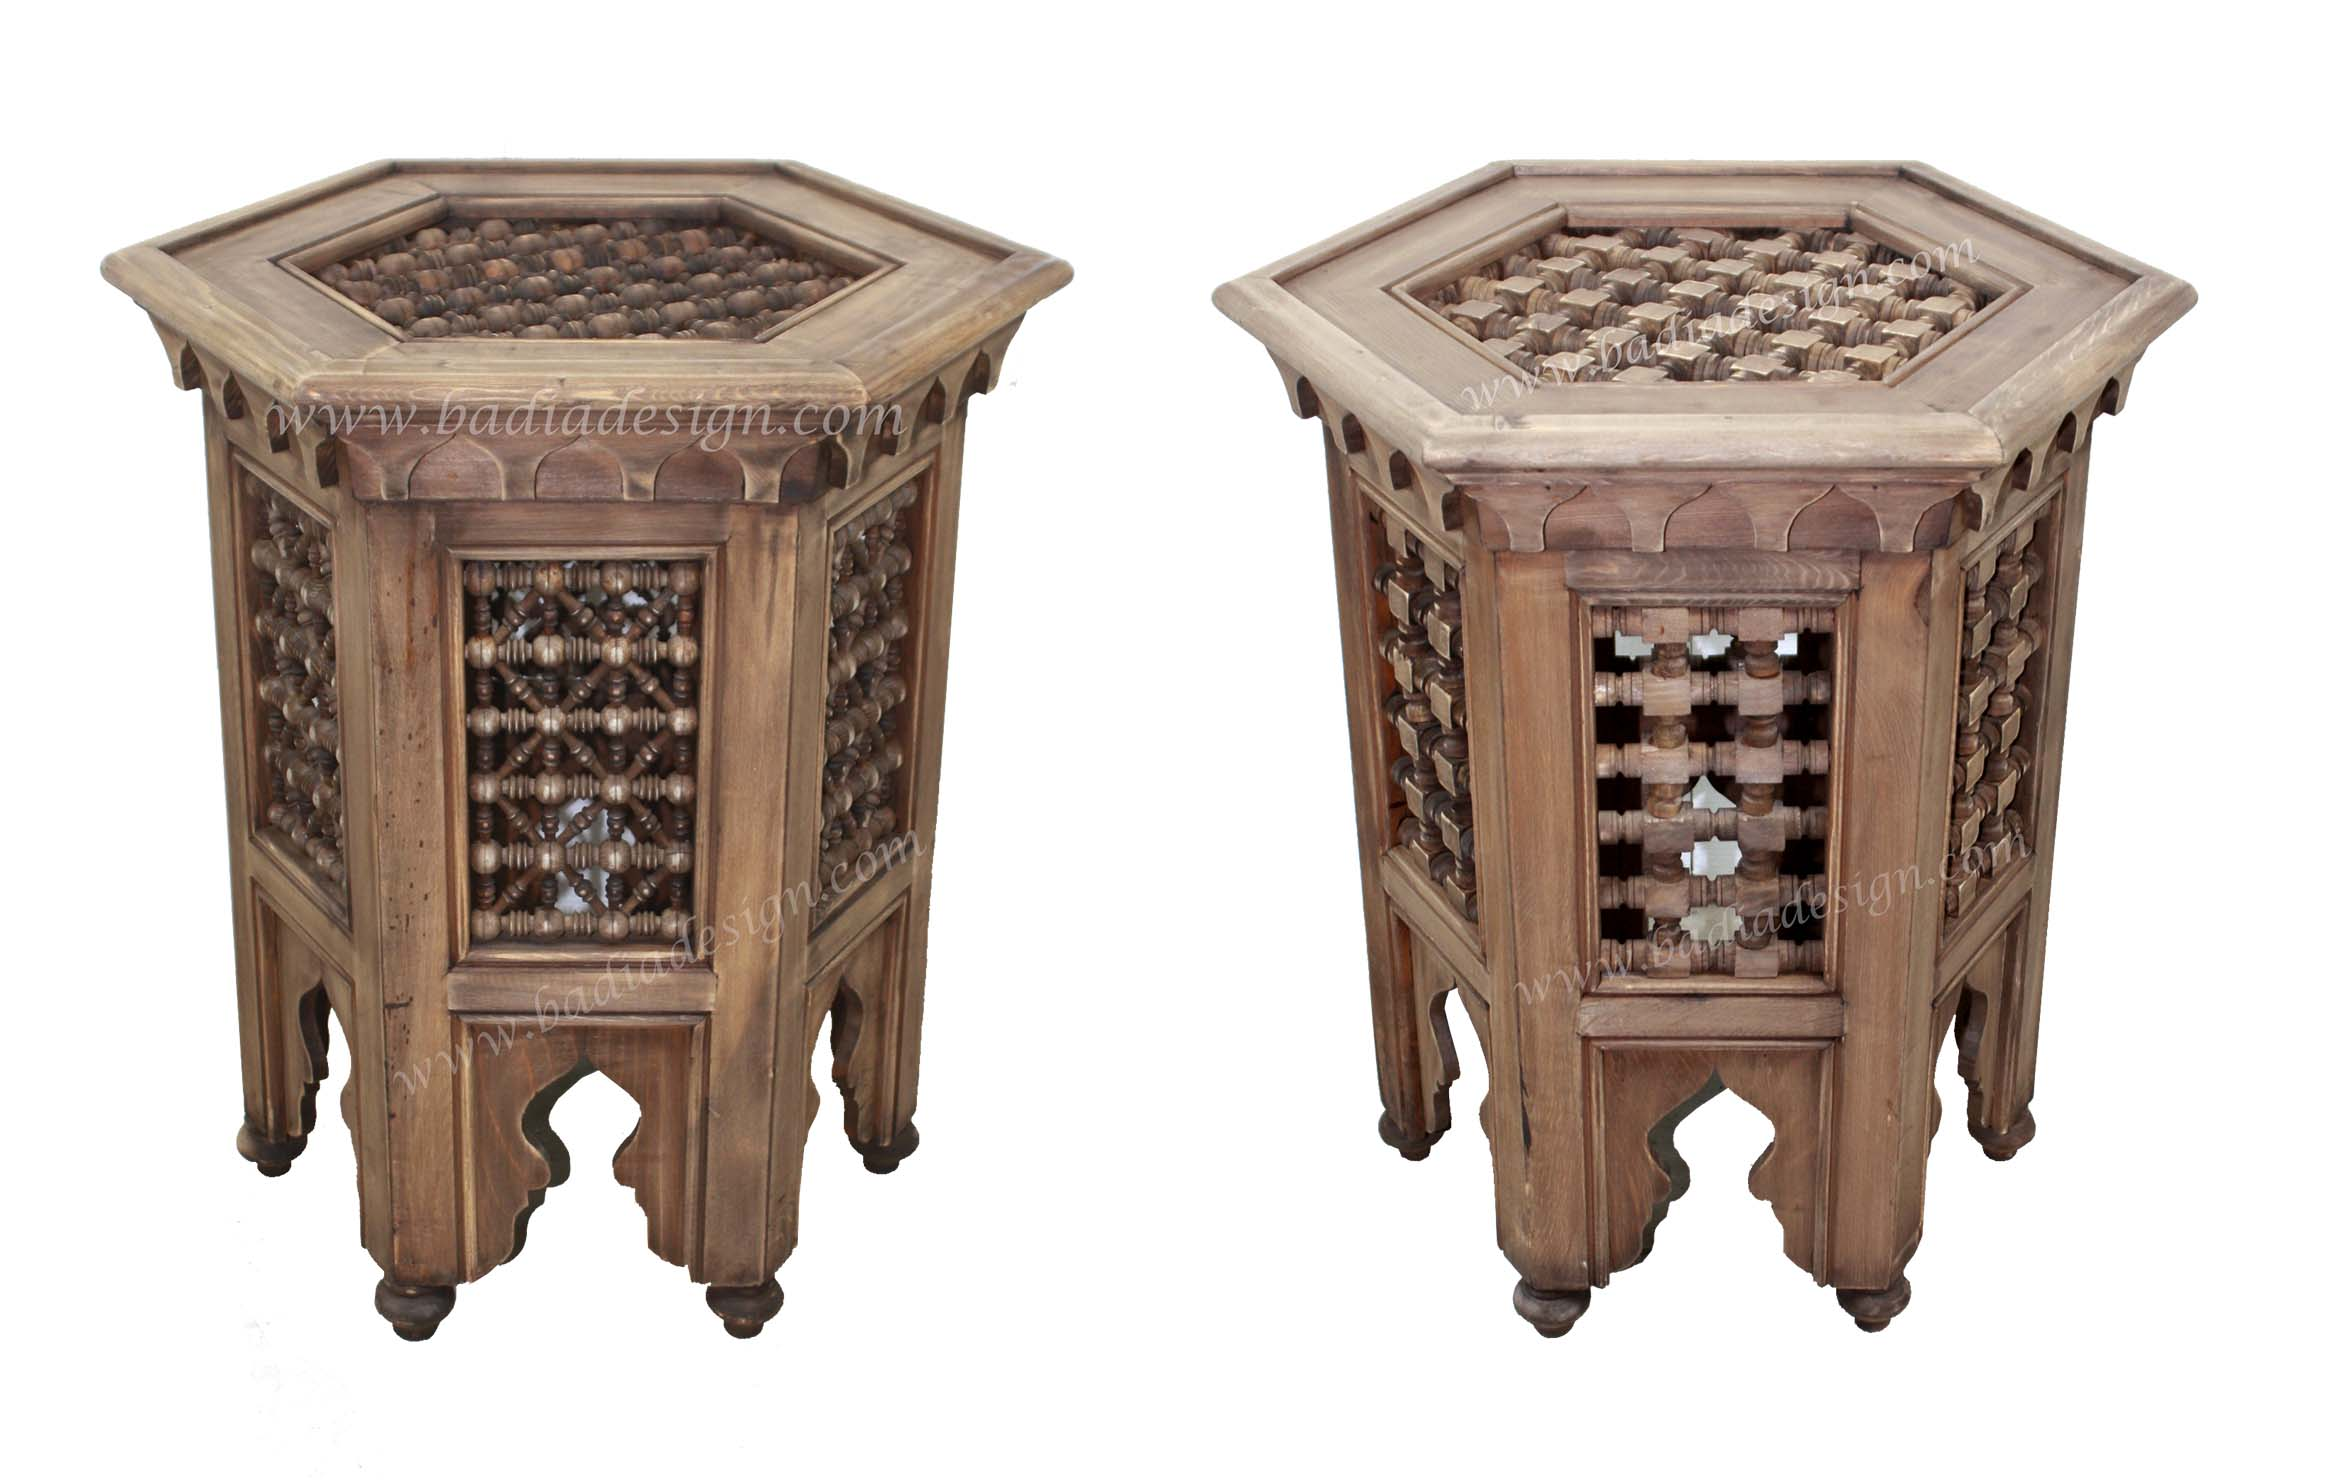 moroccan-wooden-moucharabieh-side-table-cw-st042.jpg